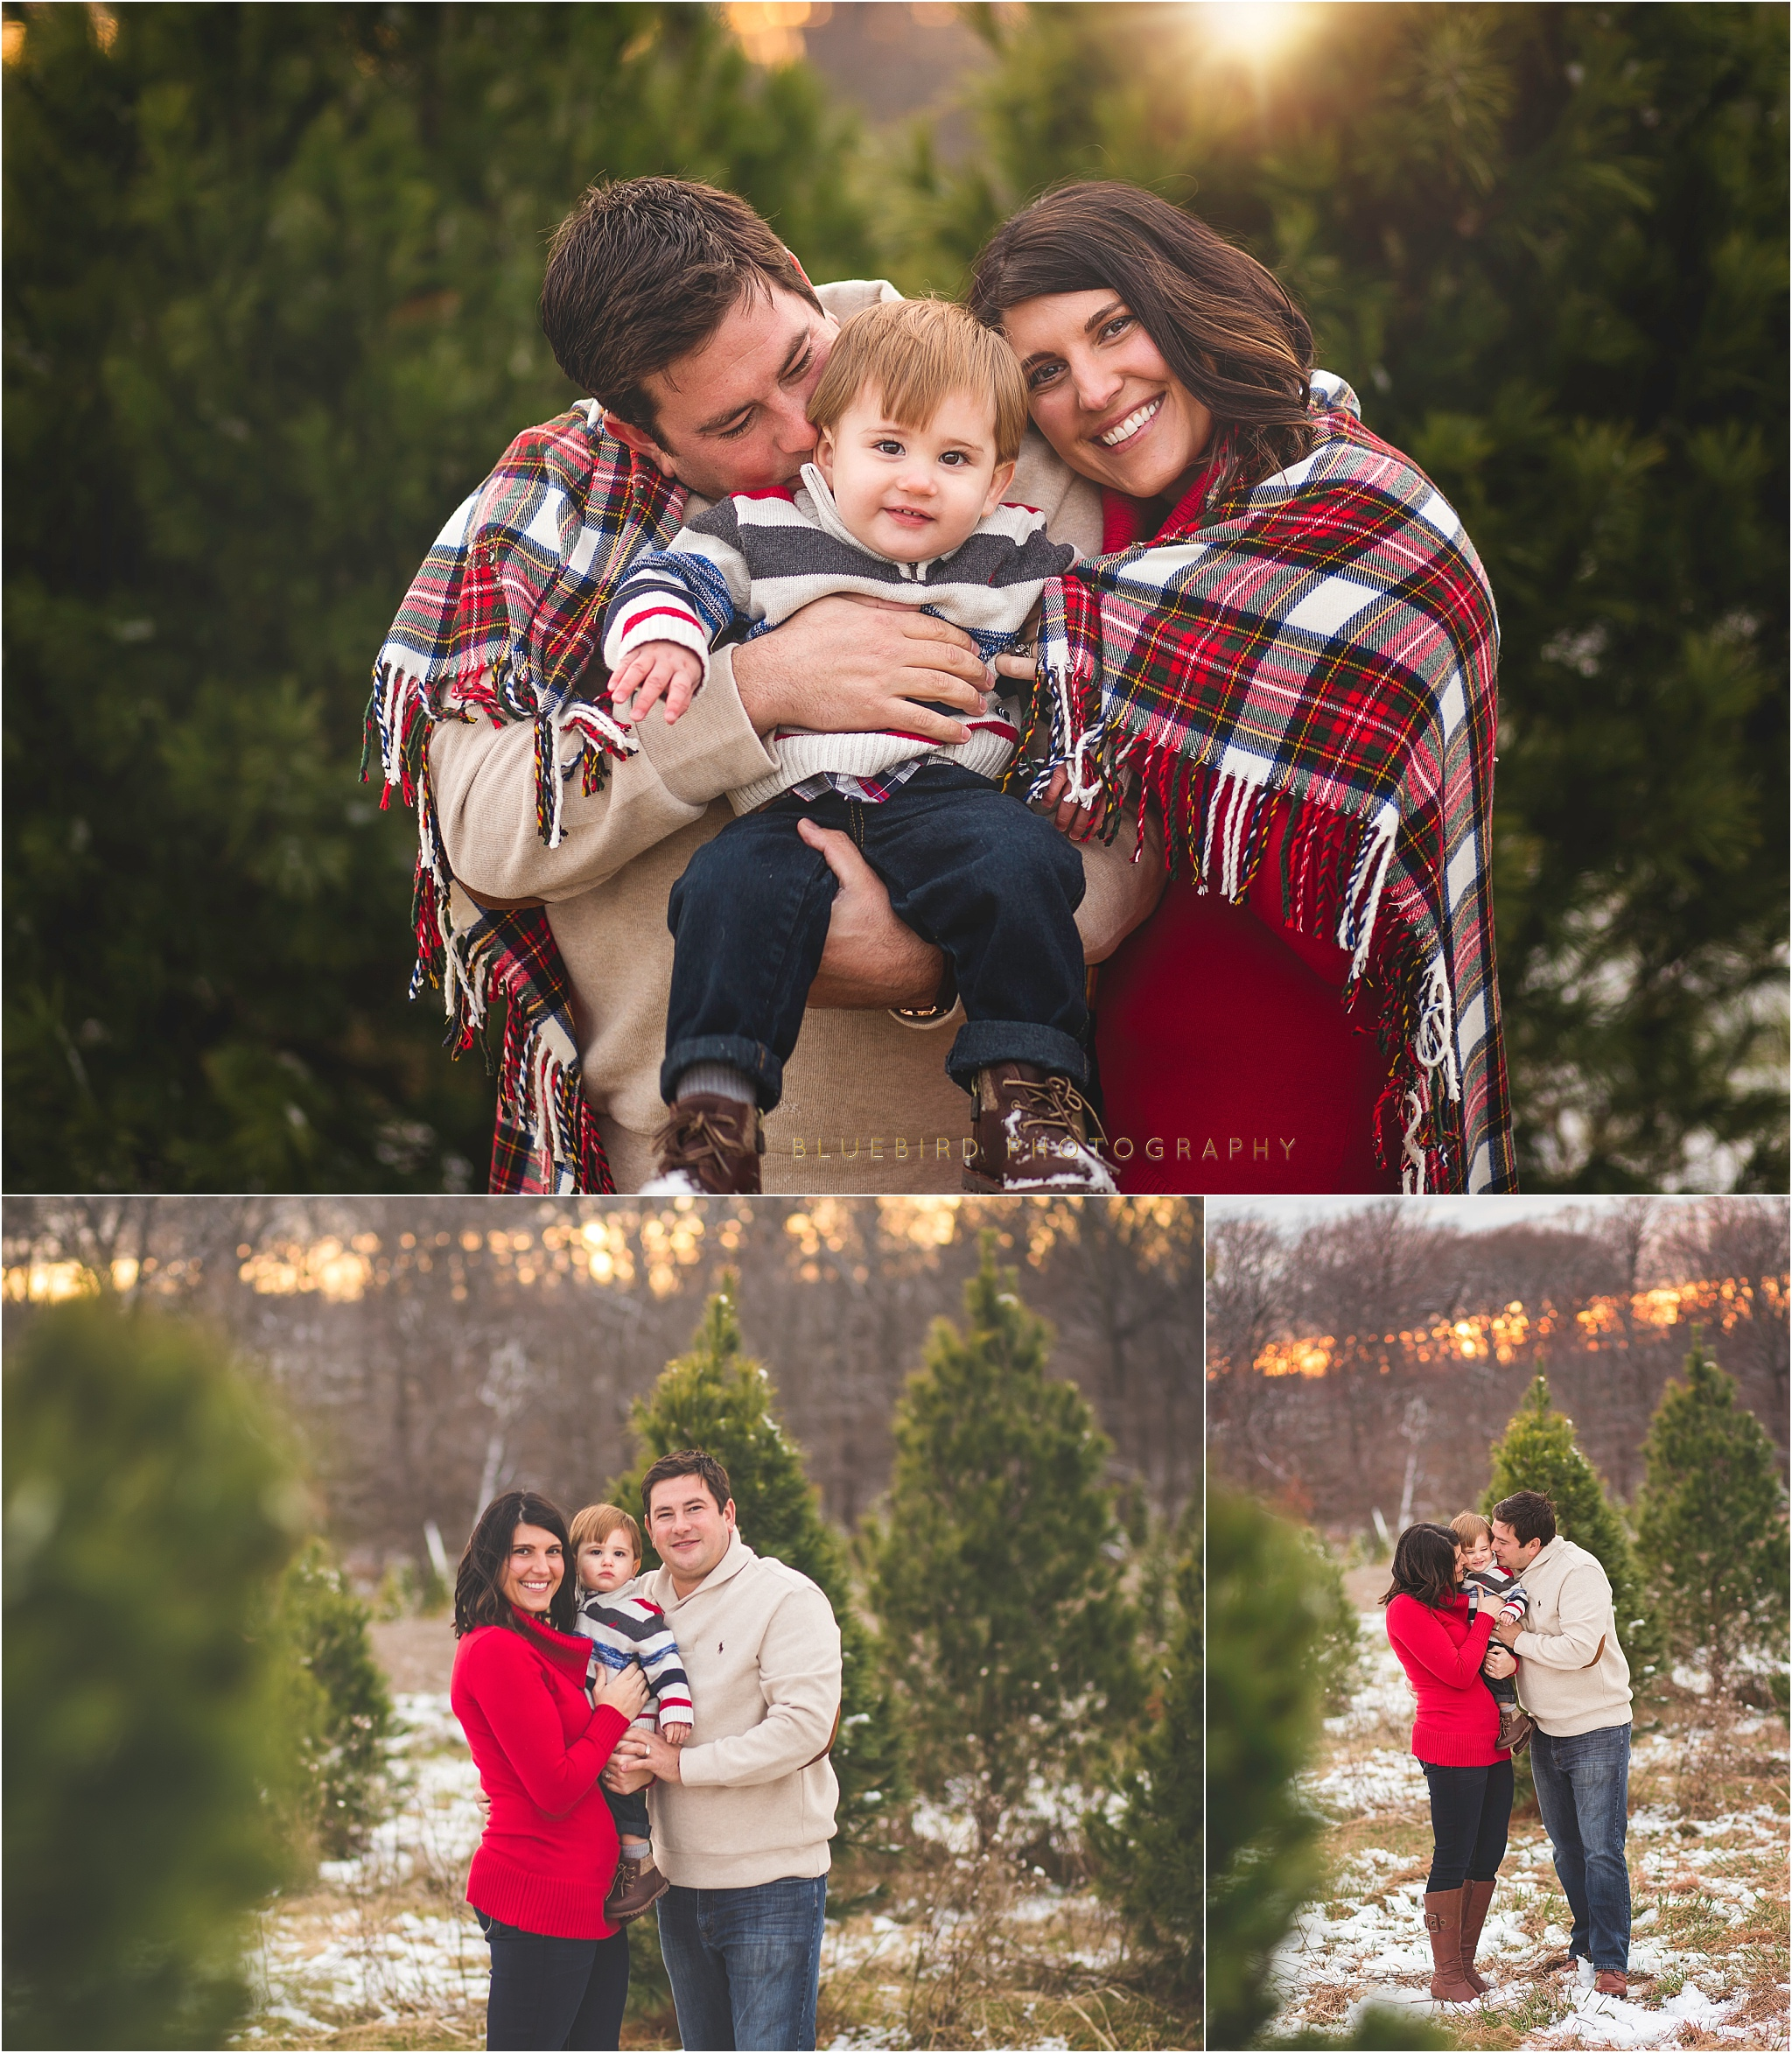 Christmas Tree Farm Mini Sessions.2016 Christmas Tree Farm Minis Bluebird Photography